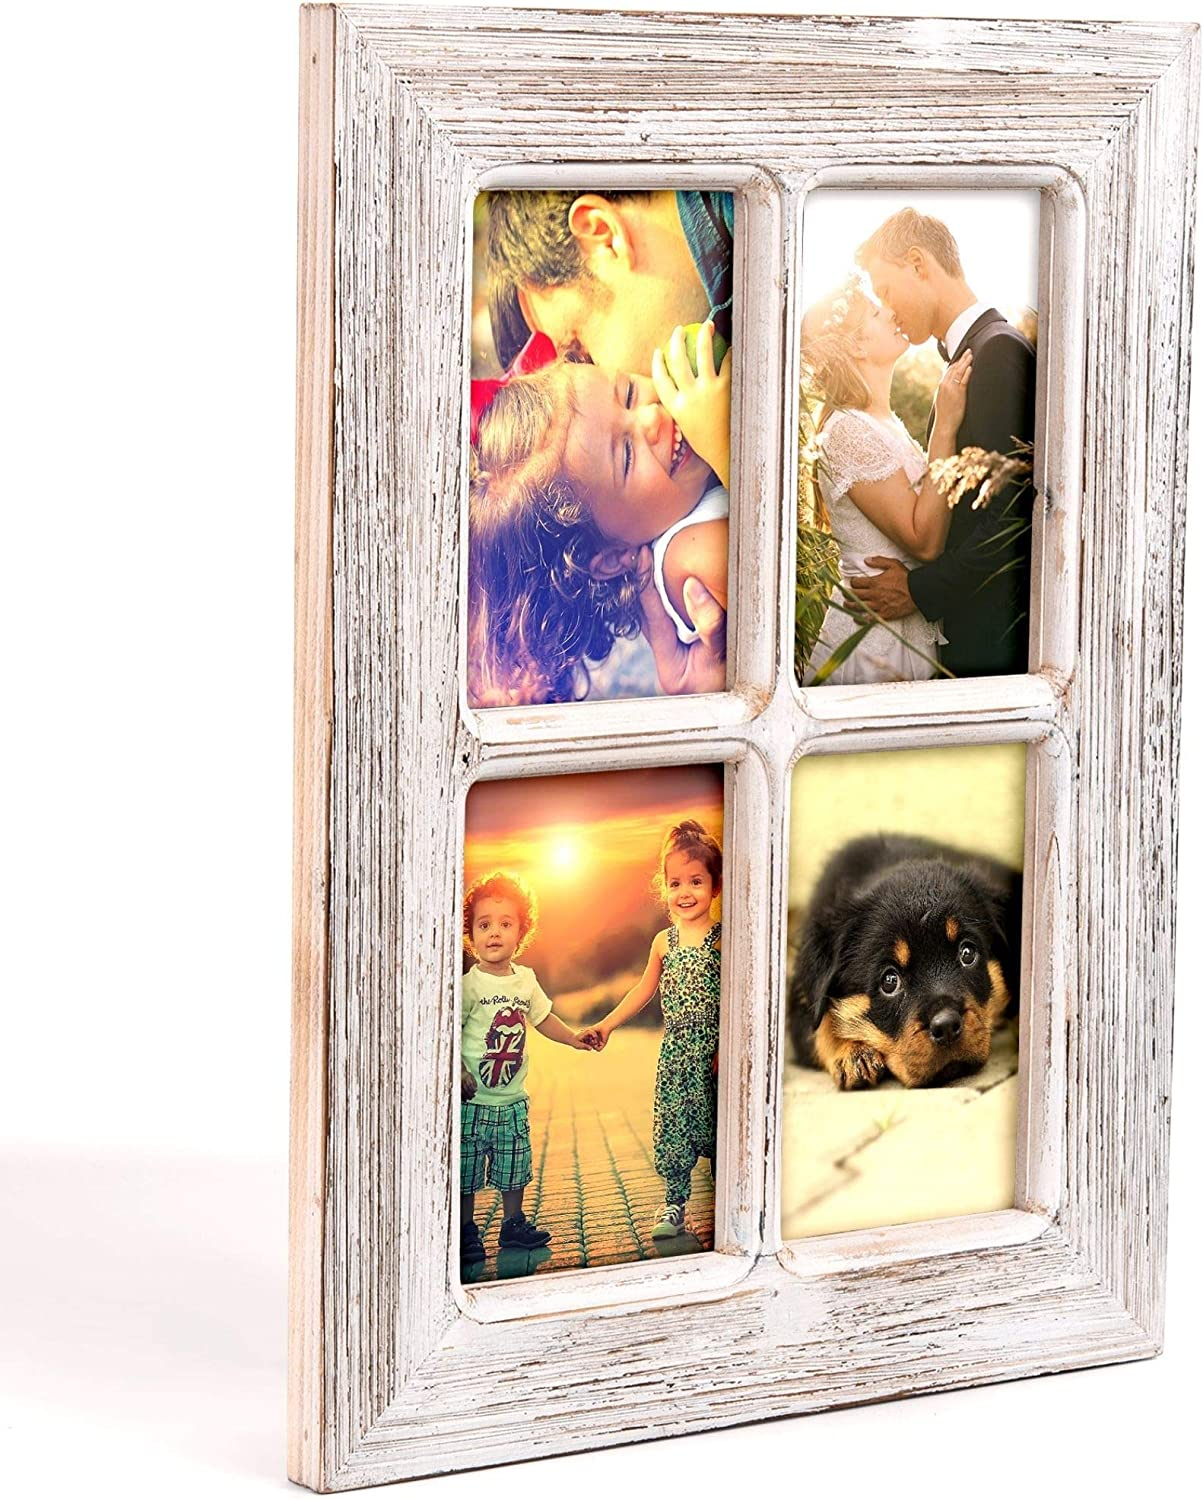 "Juwell Family Collage Picture Frame for 4x6 Photos, Rustic Farmhouse Wood with Clear Plastic Cover, Vertical and Horizontal Display, Modern 15.7"" x 11.75"" Home Decor"